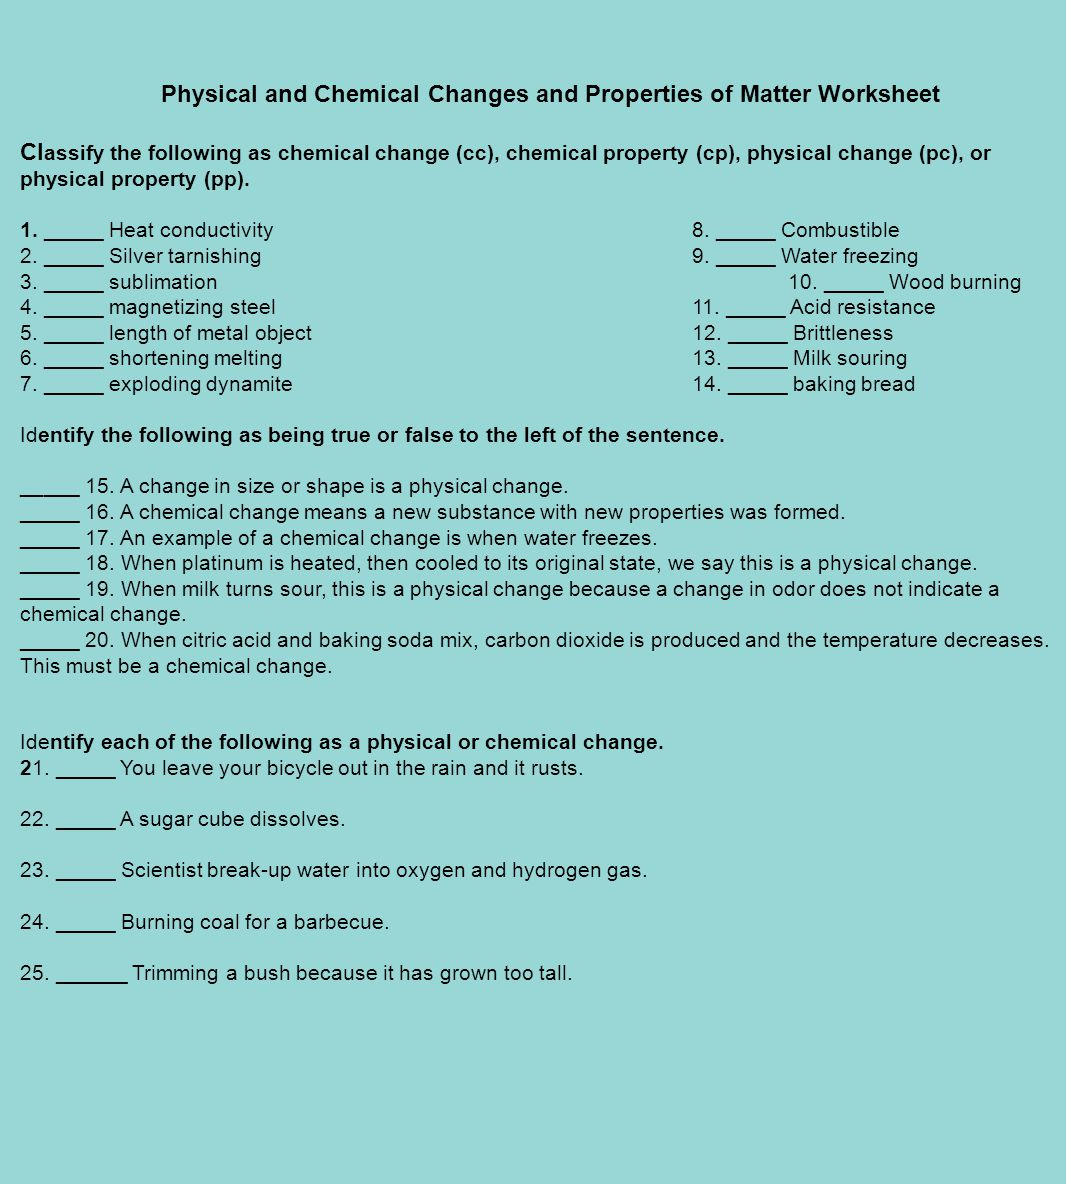 Physical and Chemical Changes and Properties of Matter Worksheet